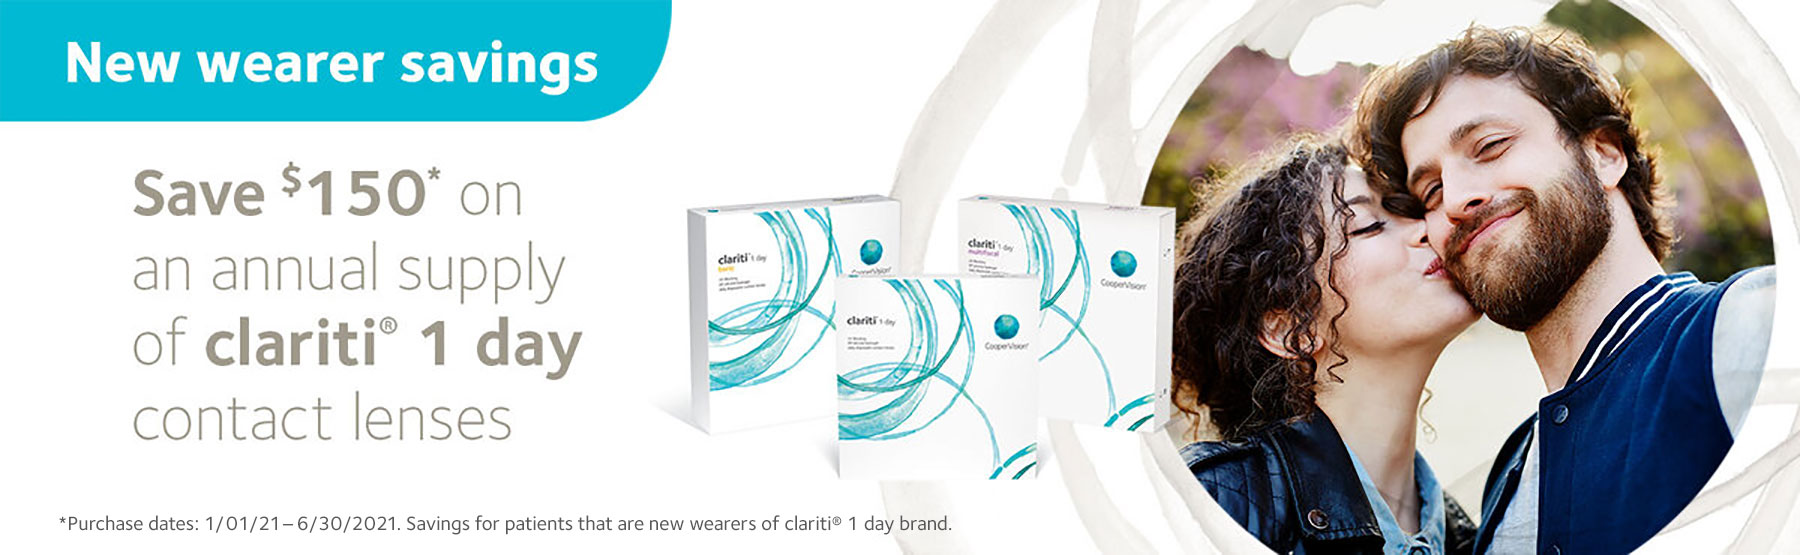 Save $150 on your clariti 1 day contact lenses